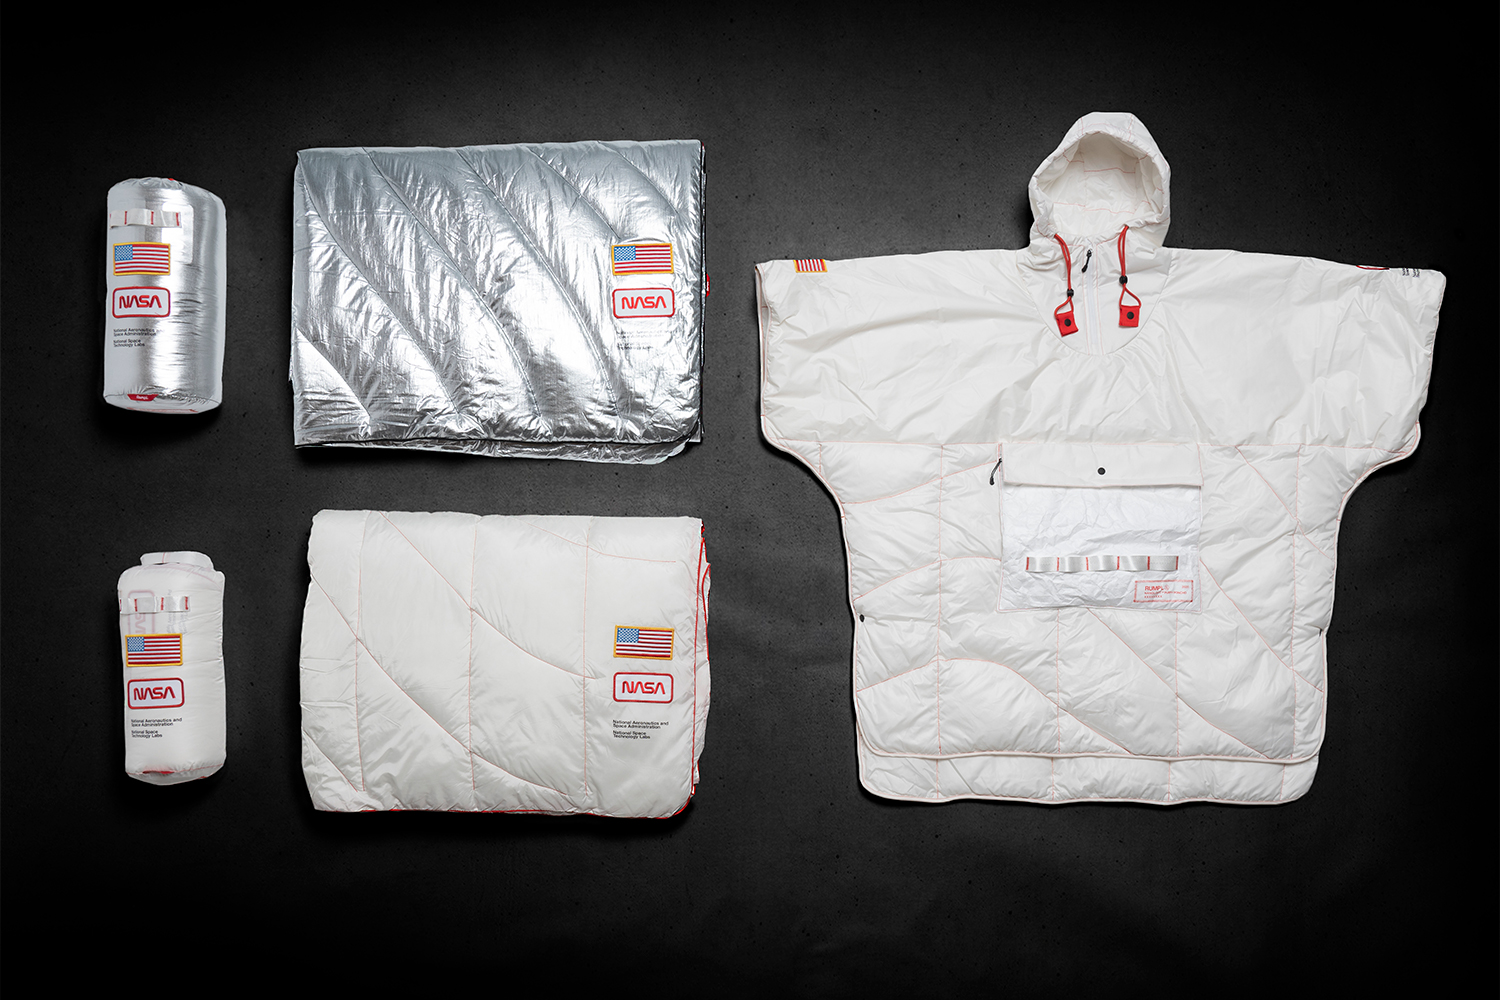 Rumpl NASA NanoLoft Puffy Poncho Release Tyvek ripstop Apollo 13 Space travel expedition  outerwear jackets cozy